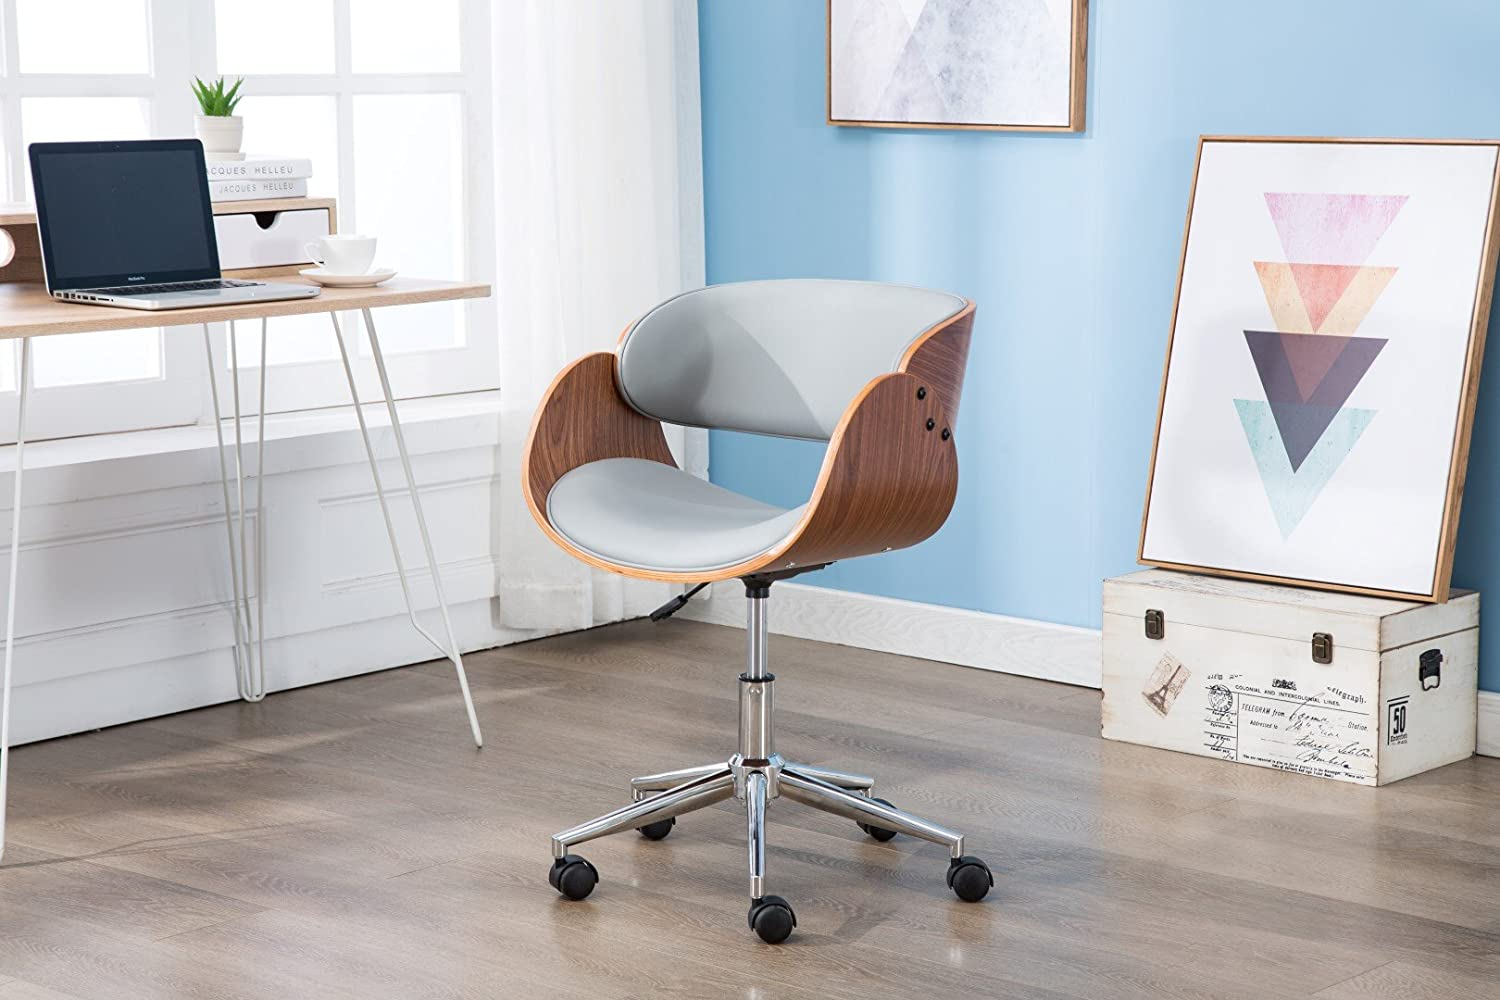 Porthos Home SKC016A Gry Lydia Stylish Home Desk, Height Adjustable, 360 Swivel, with Caster Wheels Unique Luxury Designer Office Chairs Size 21 x 32, Gray